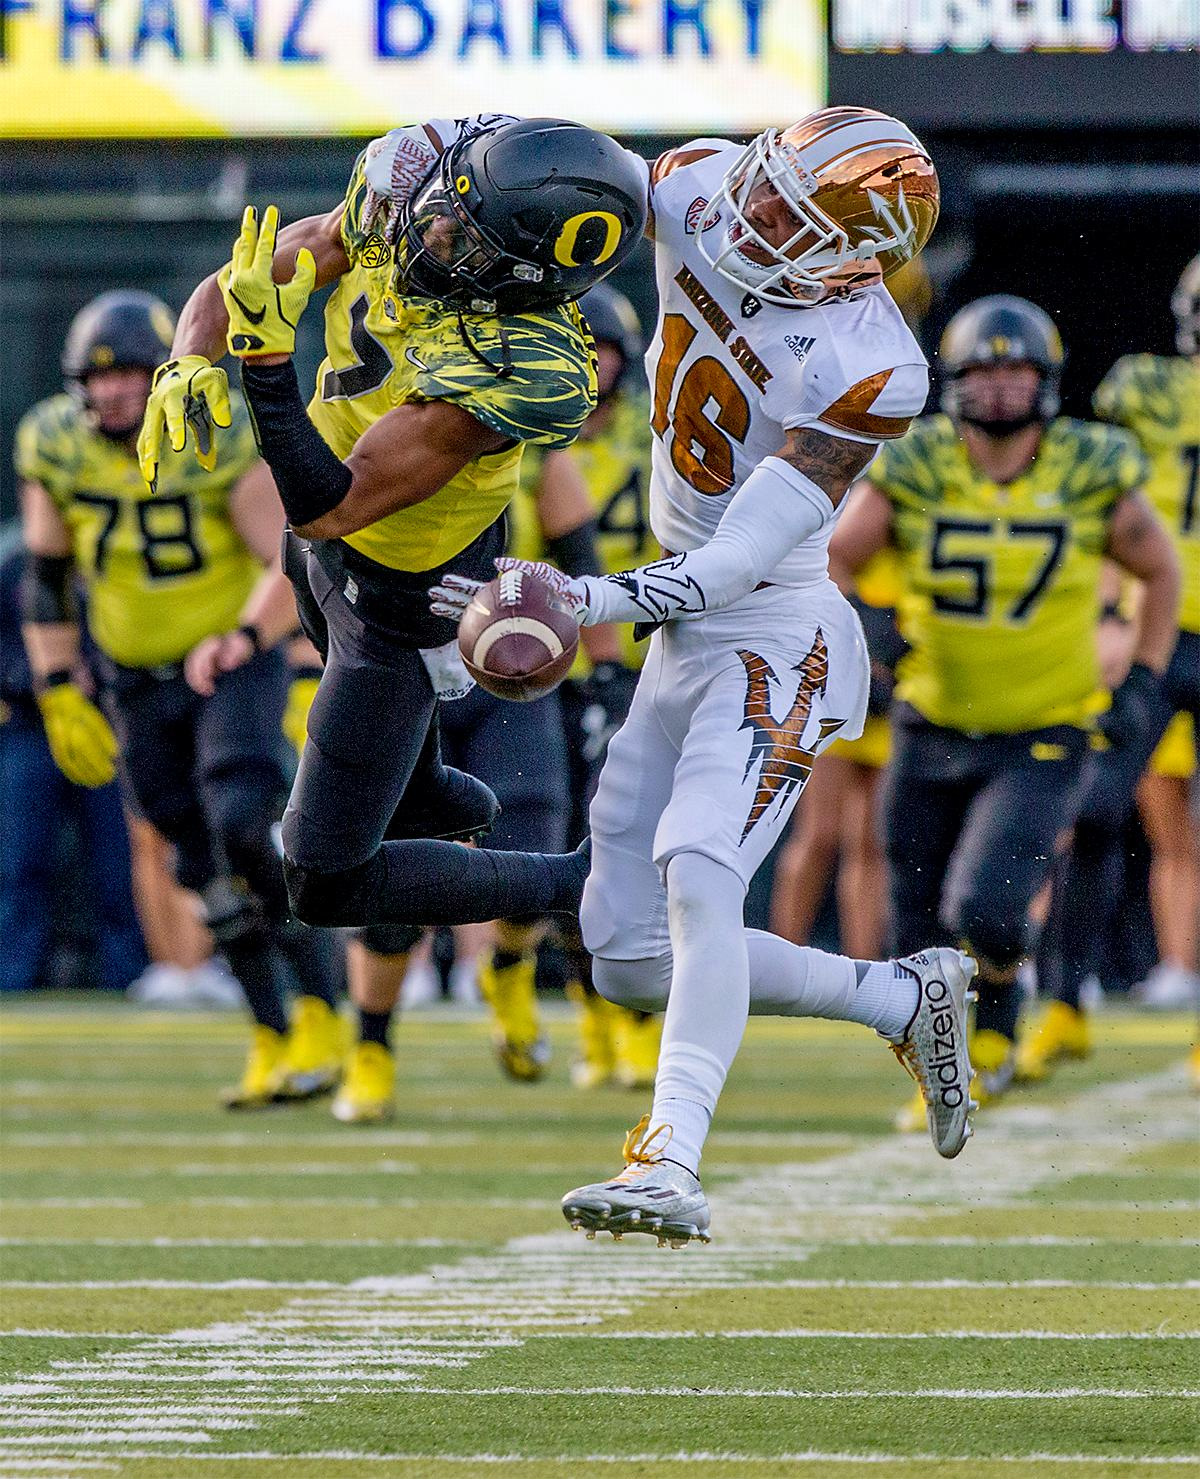 The Sun Devils' Maurice mo Chandler (#16) blocks an attempts by the Duck's Darren Carrington (#7) to make a catch. The Oregon Ducks broke their losing streak by defeating the ASU Sun Devils on Saturday 54-35. Photo by August Frank, Oregon News Lab